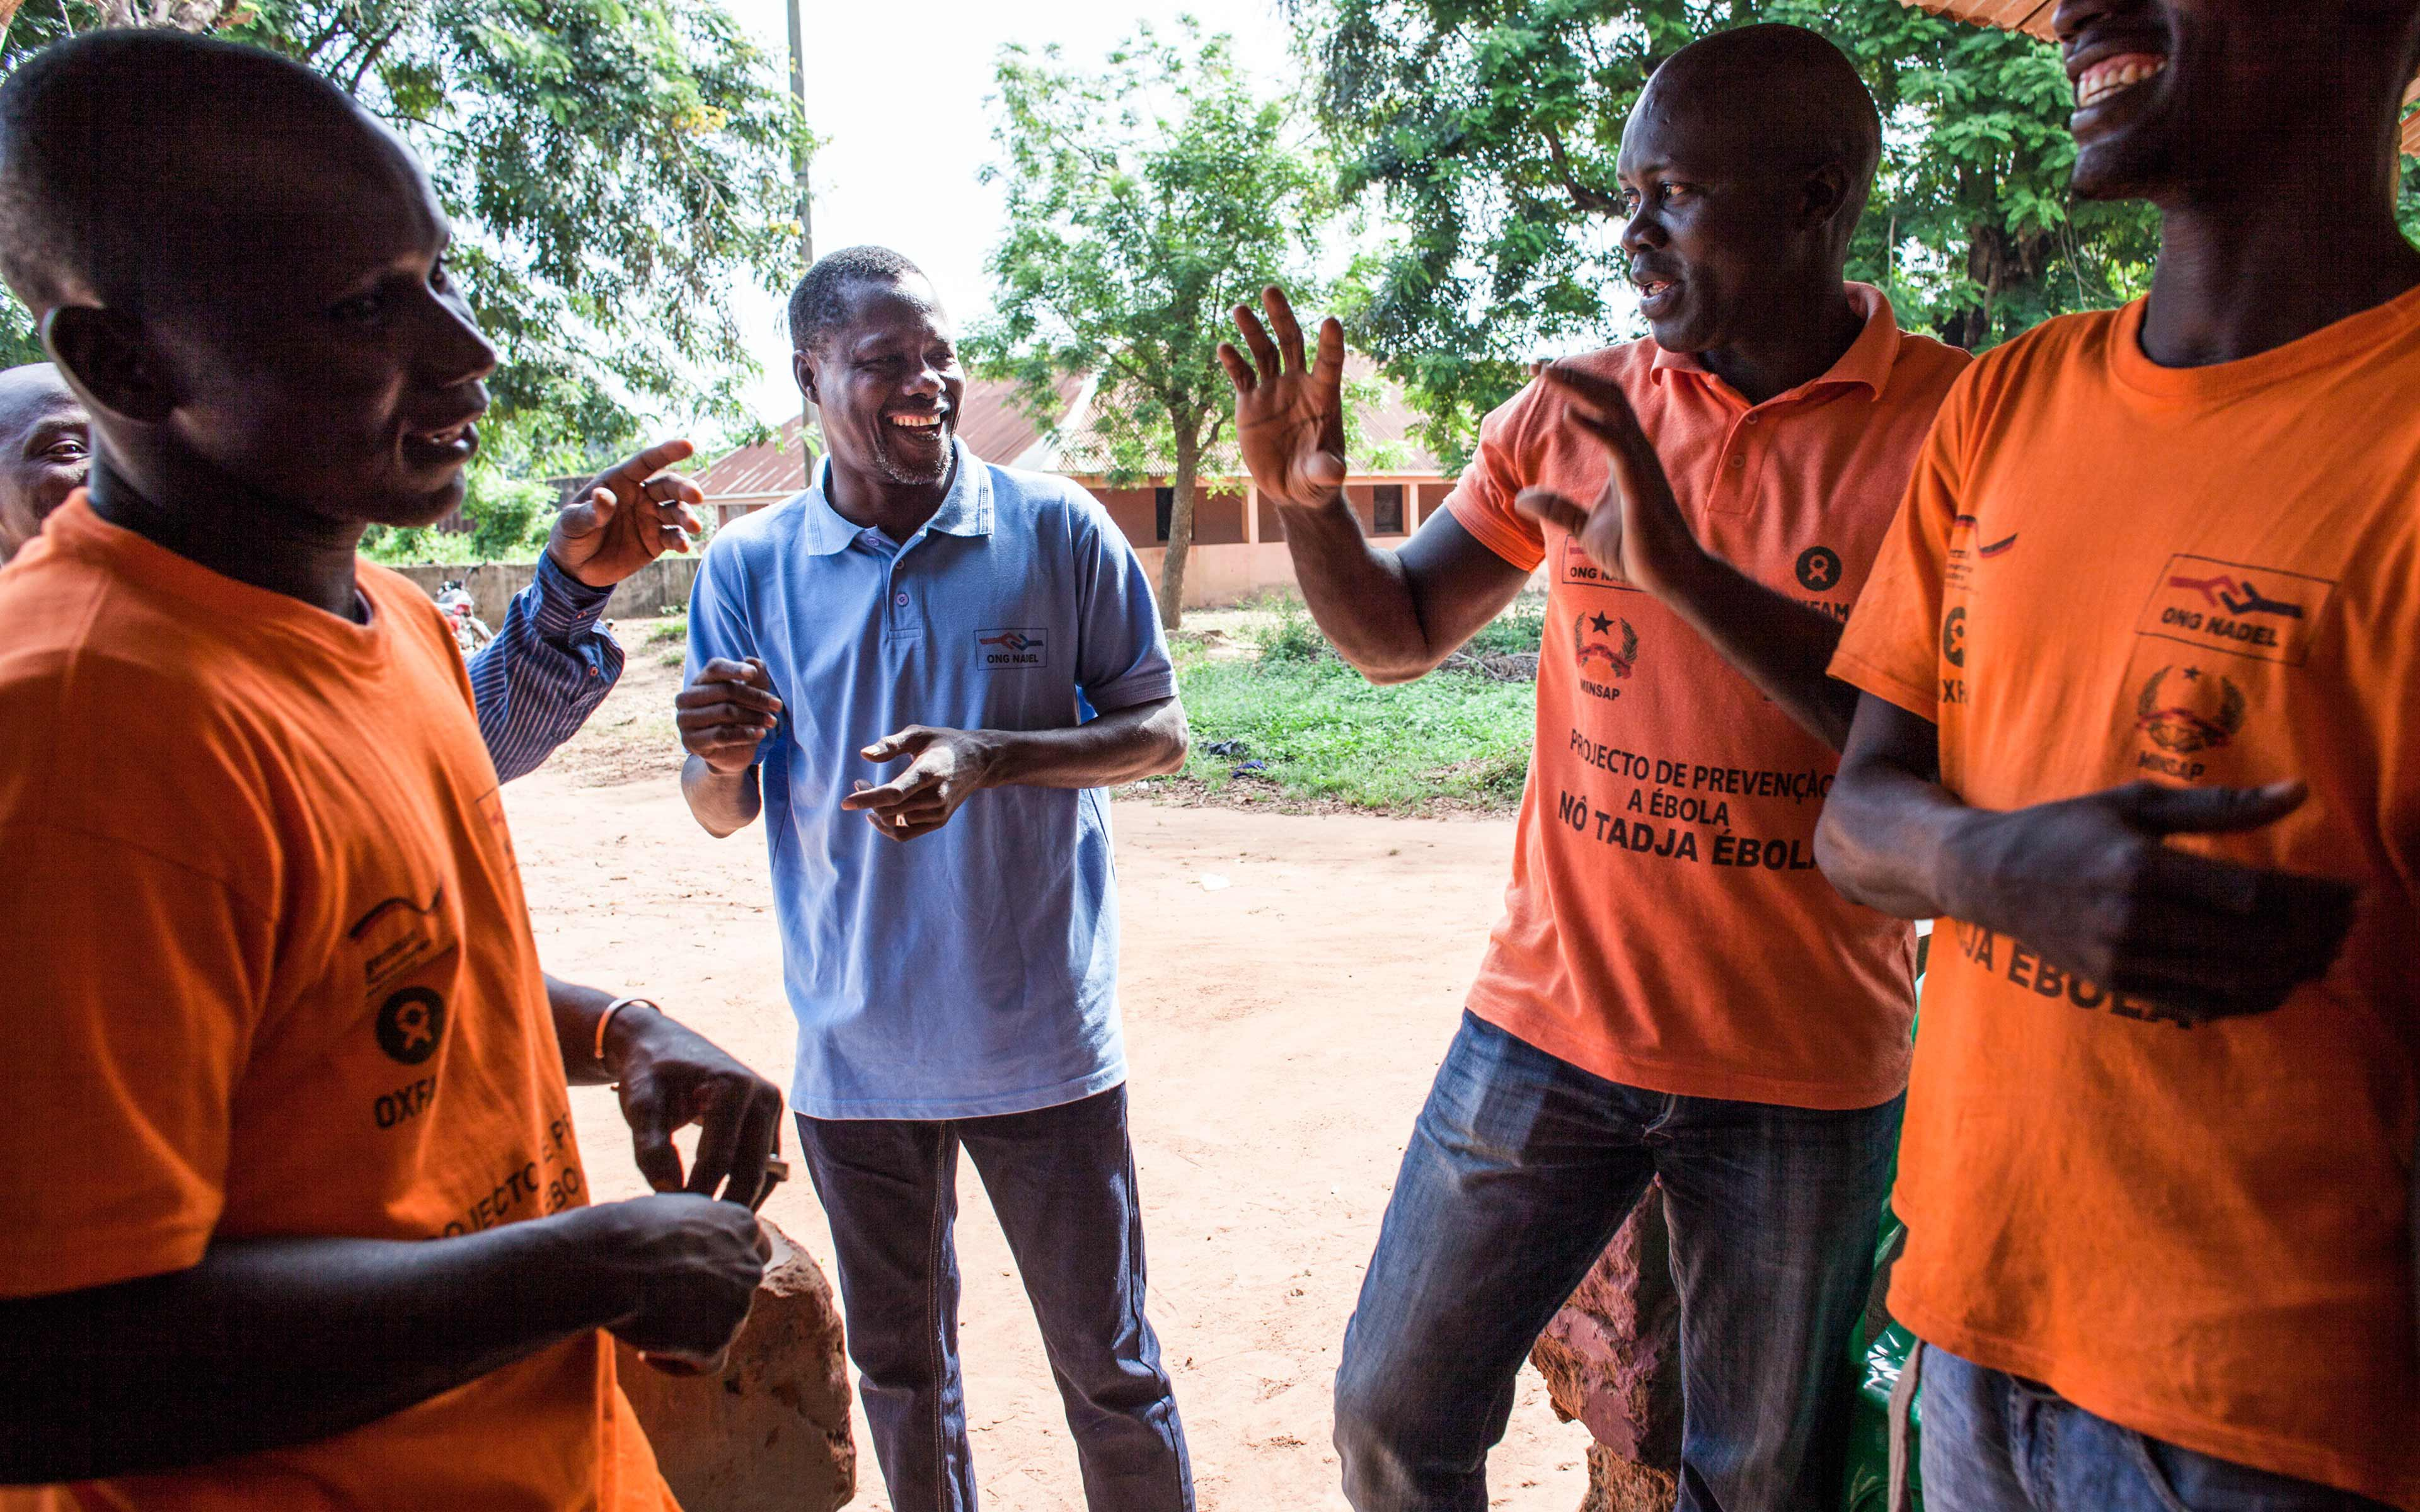 Sidi Jaquité talks with members of his Ebola rapid-response team in Catio, Guinea-Bissau. During the epidemic, the team deployed to communities that were slow to recognize the urgent need for Ebola preparedness measures—living in tents until they were satisfied the job was done.